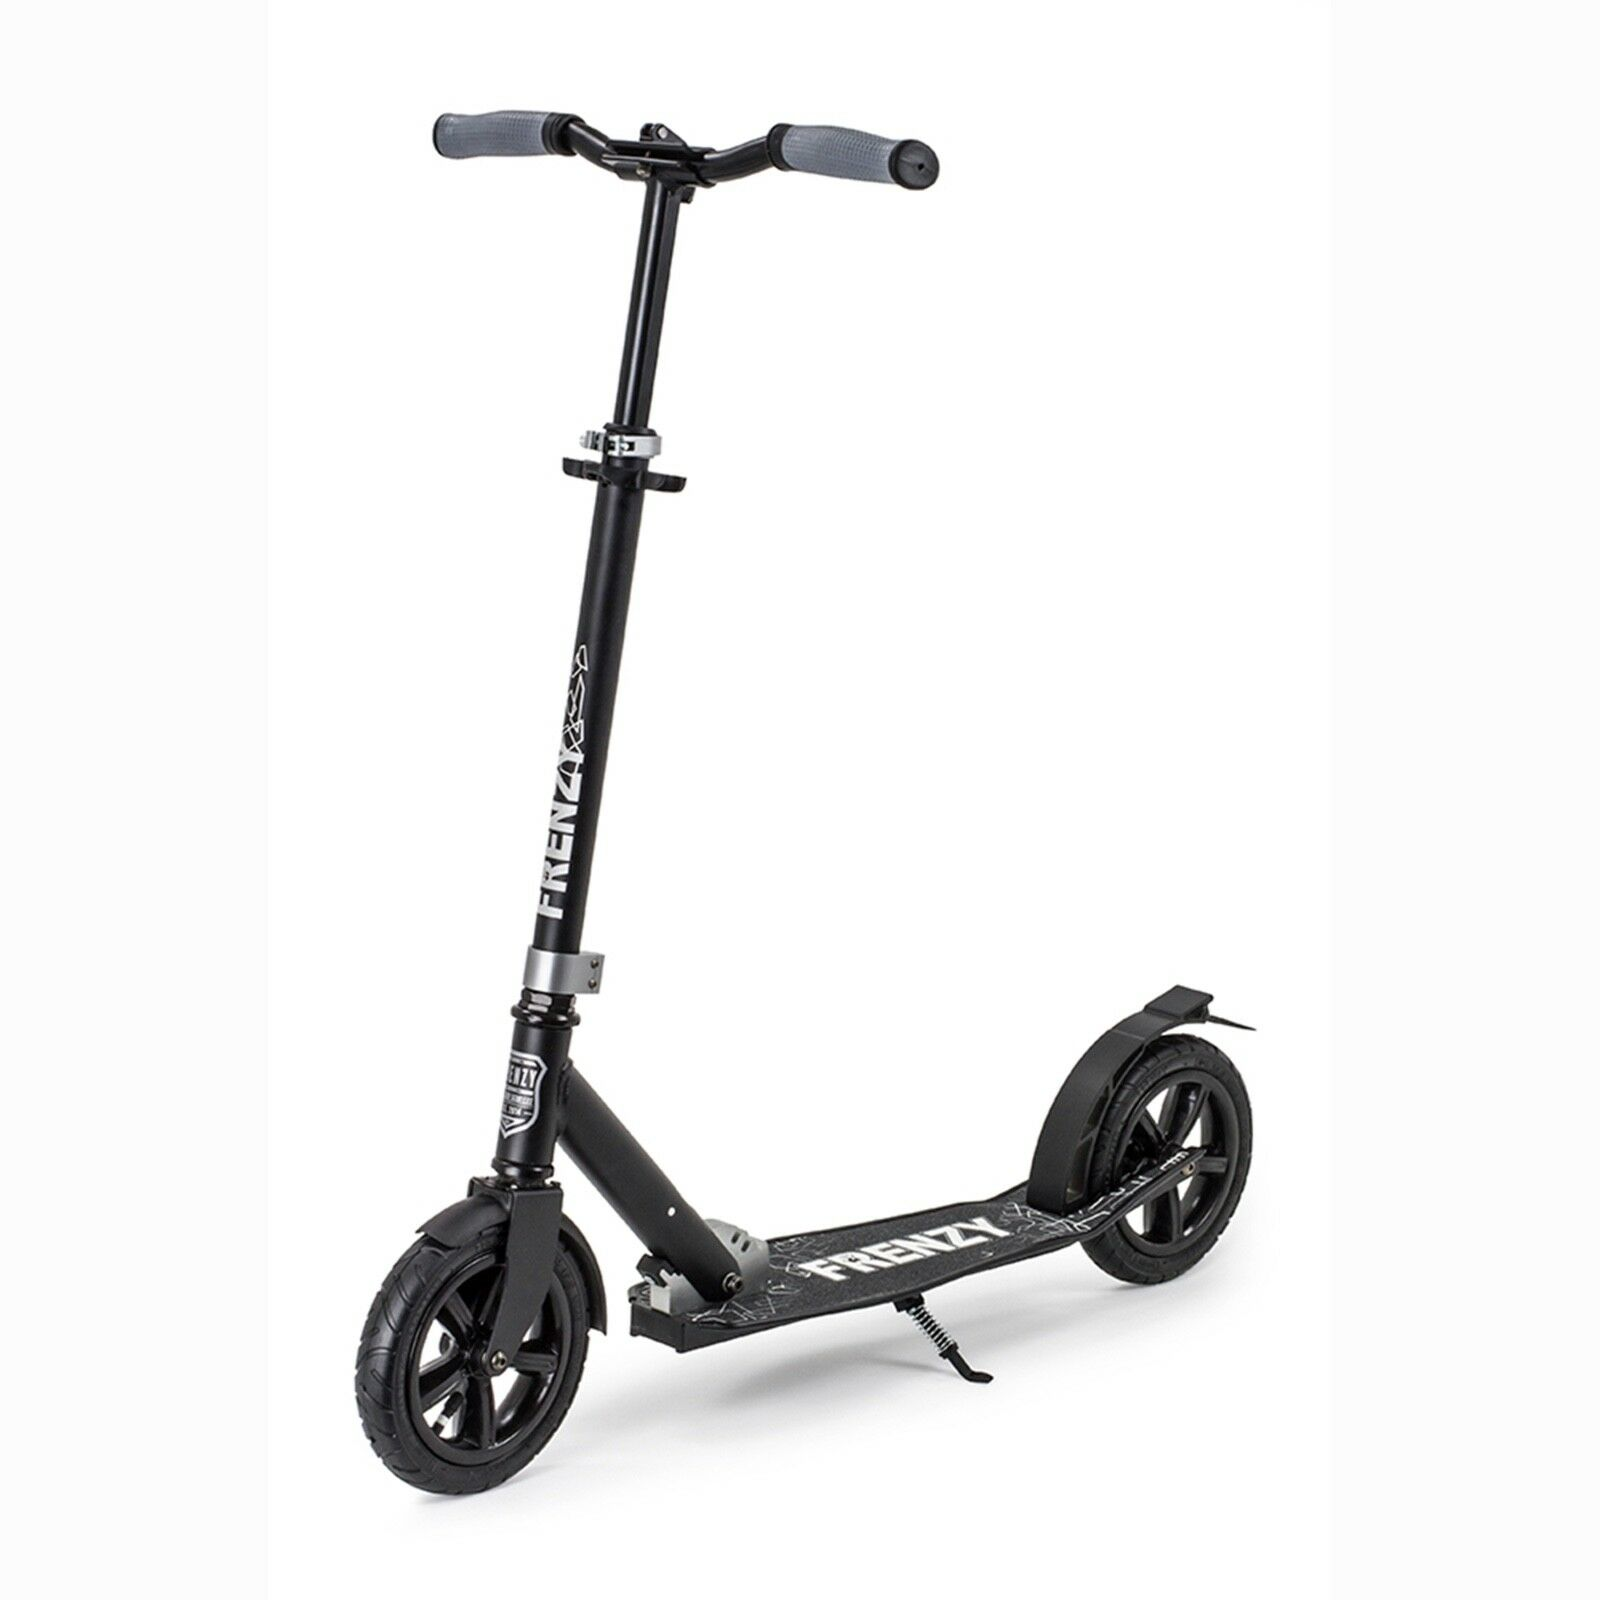 Frenzy Scooter Pneumatic Plus Ricreativi Scooter 205mm, Nero